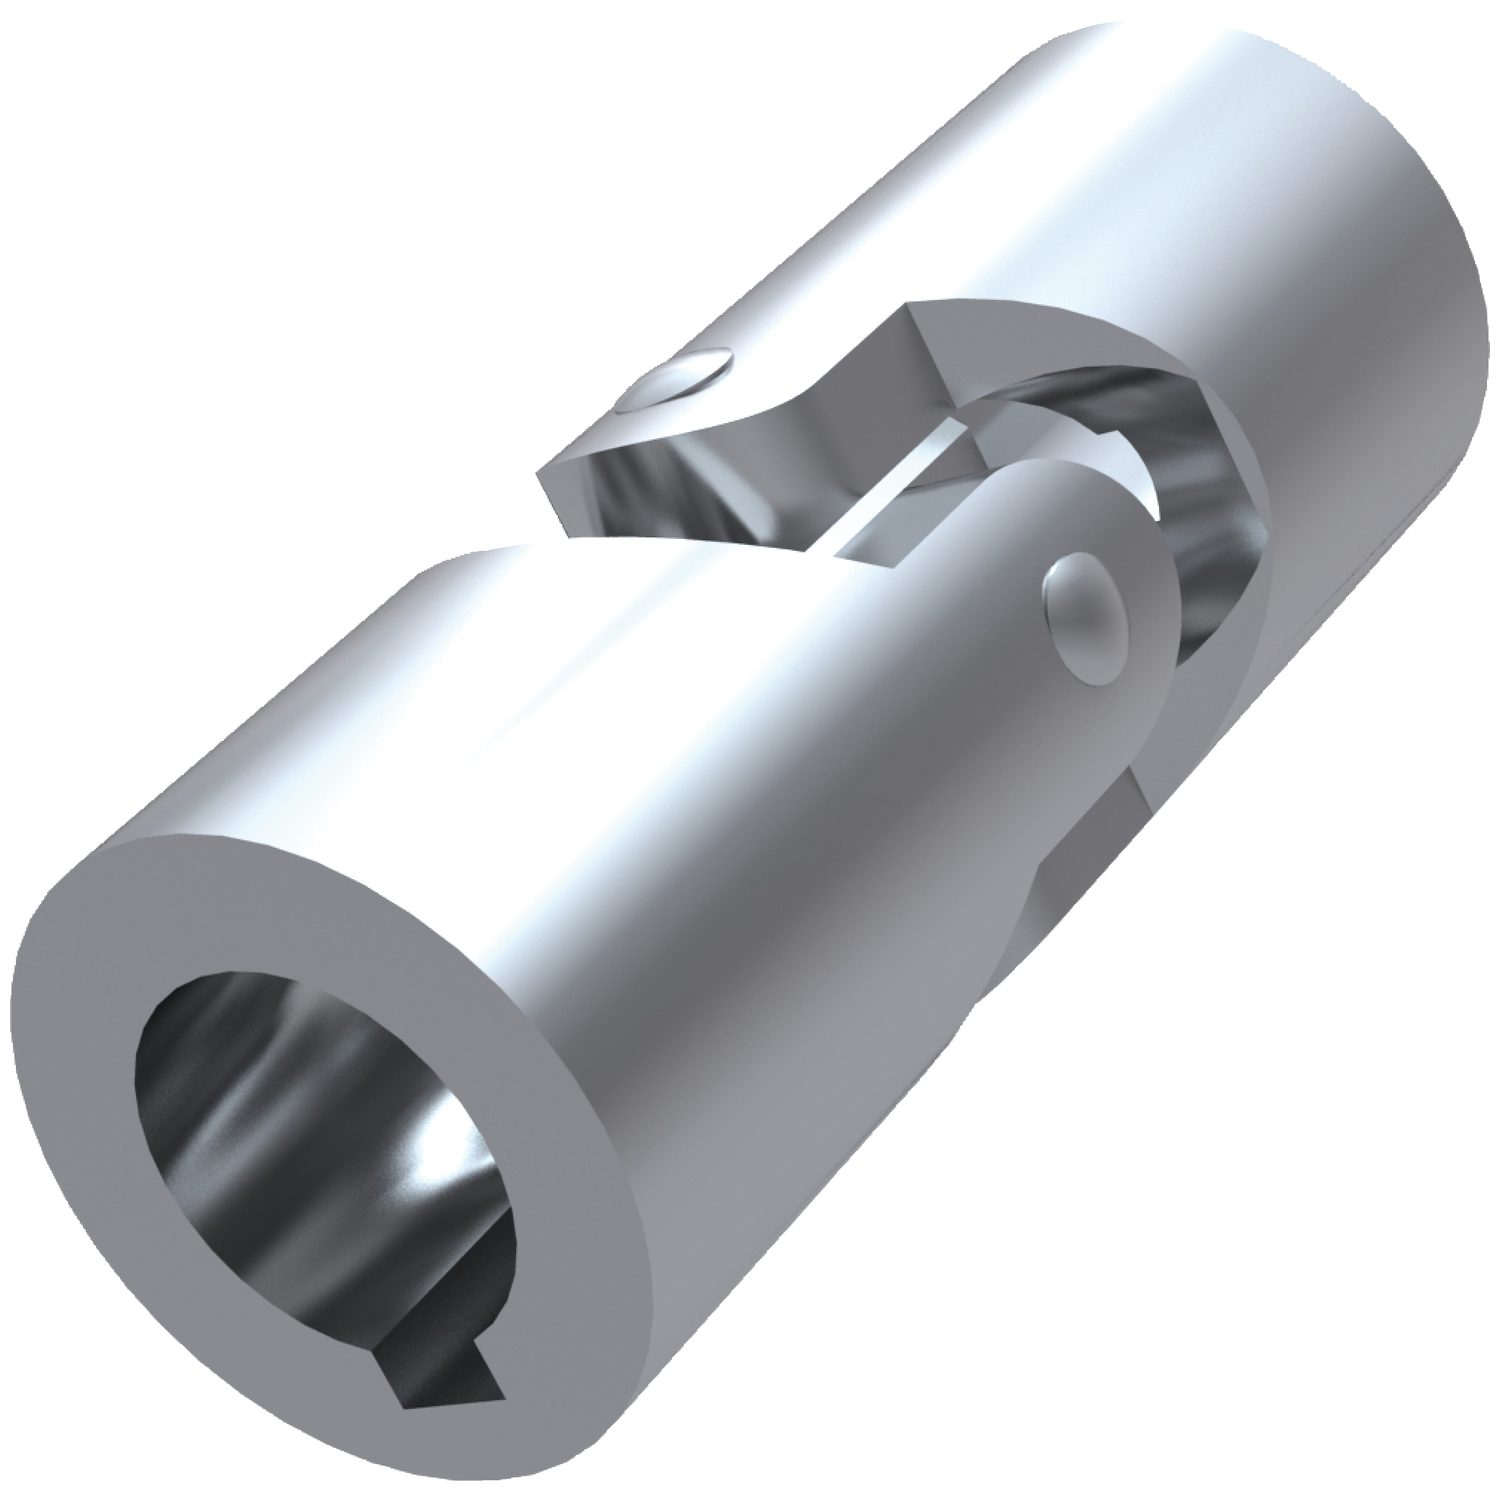 R3689 - Single Universal Joint